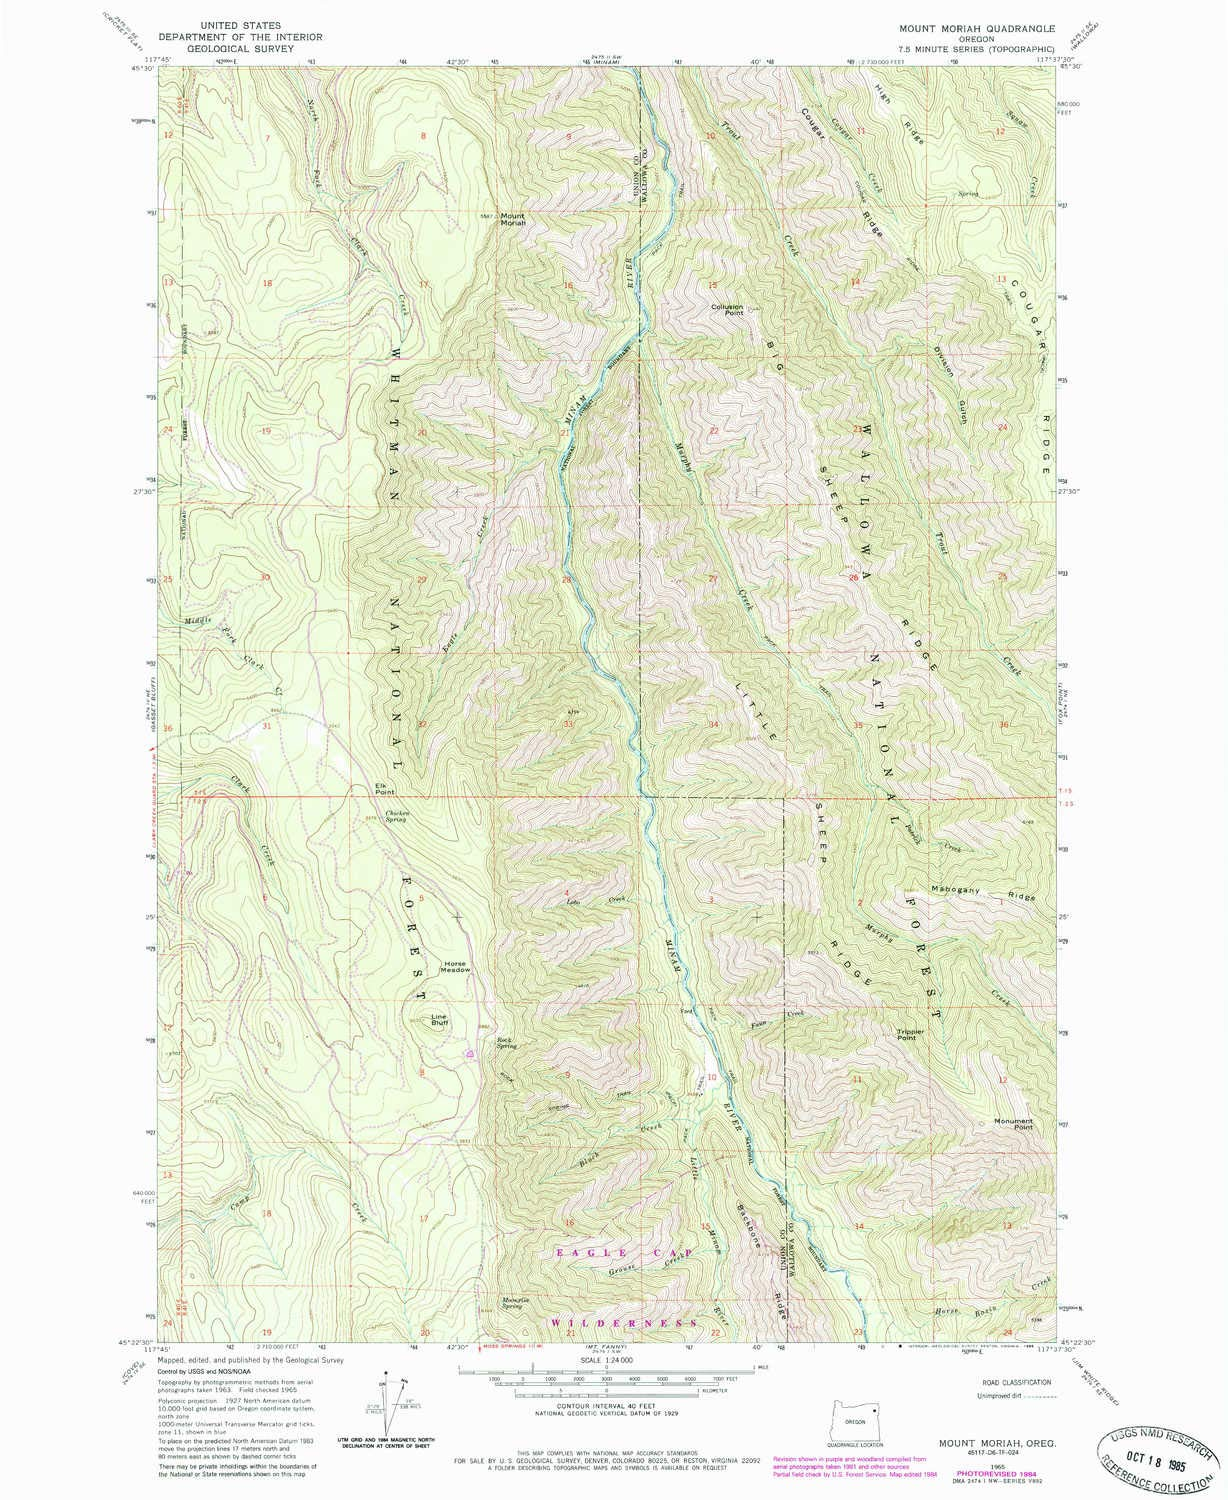 Amazon.com : YellowMaps Mount Moriah OR topo map, 1:24000 ... on carter notch map, carroll map, mount hermon map, mount ebal map, mount carrigain map, land of moriah map, st. john's map, mount calvary map, mount paran map, mount zion, huntington ravine map, the mount of olives map, monadnock state park trail map, mount shechem map, golgotha map, moriah trail map, mount chocorua map, obion county map, mount marathon map, temple mount map,